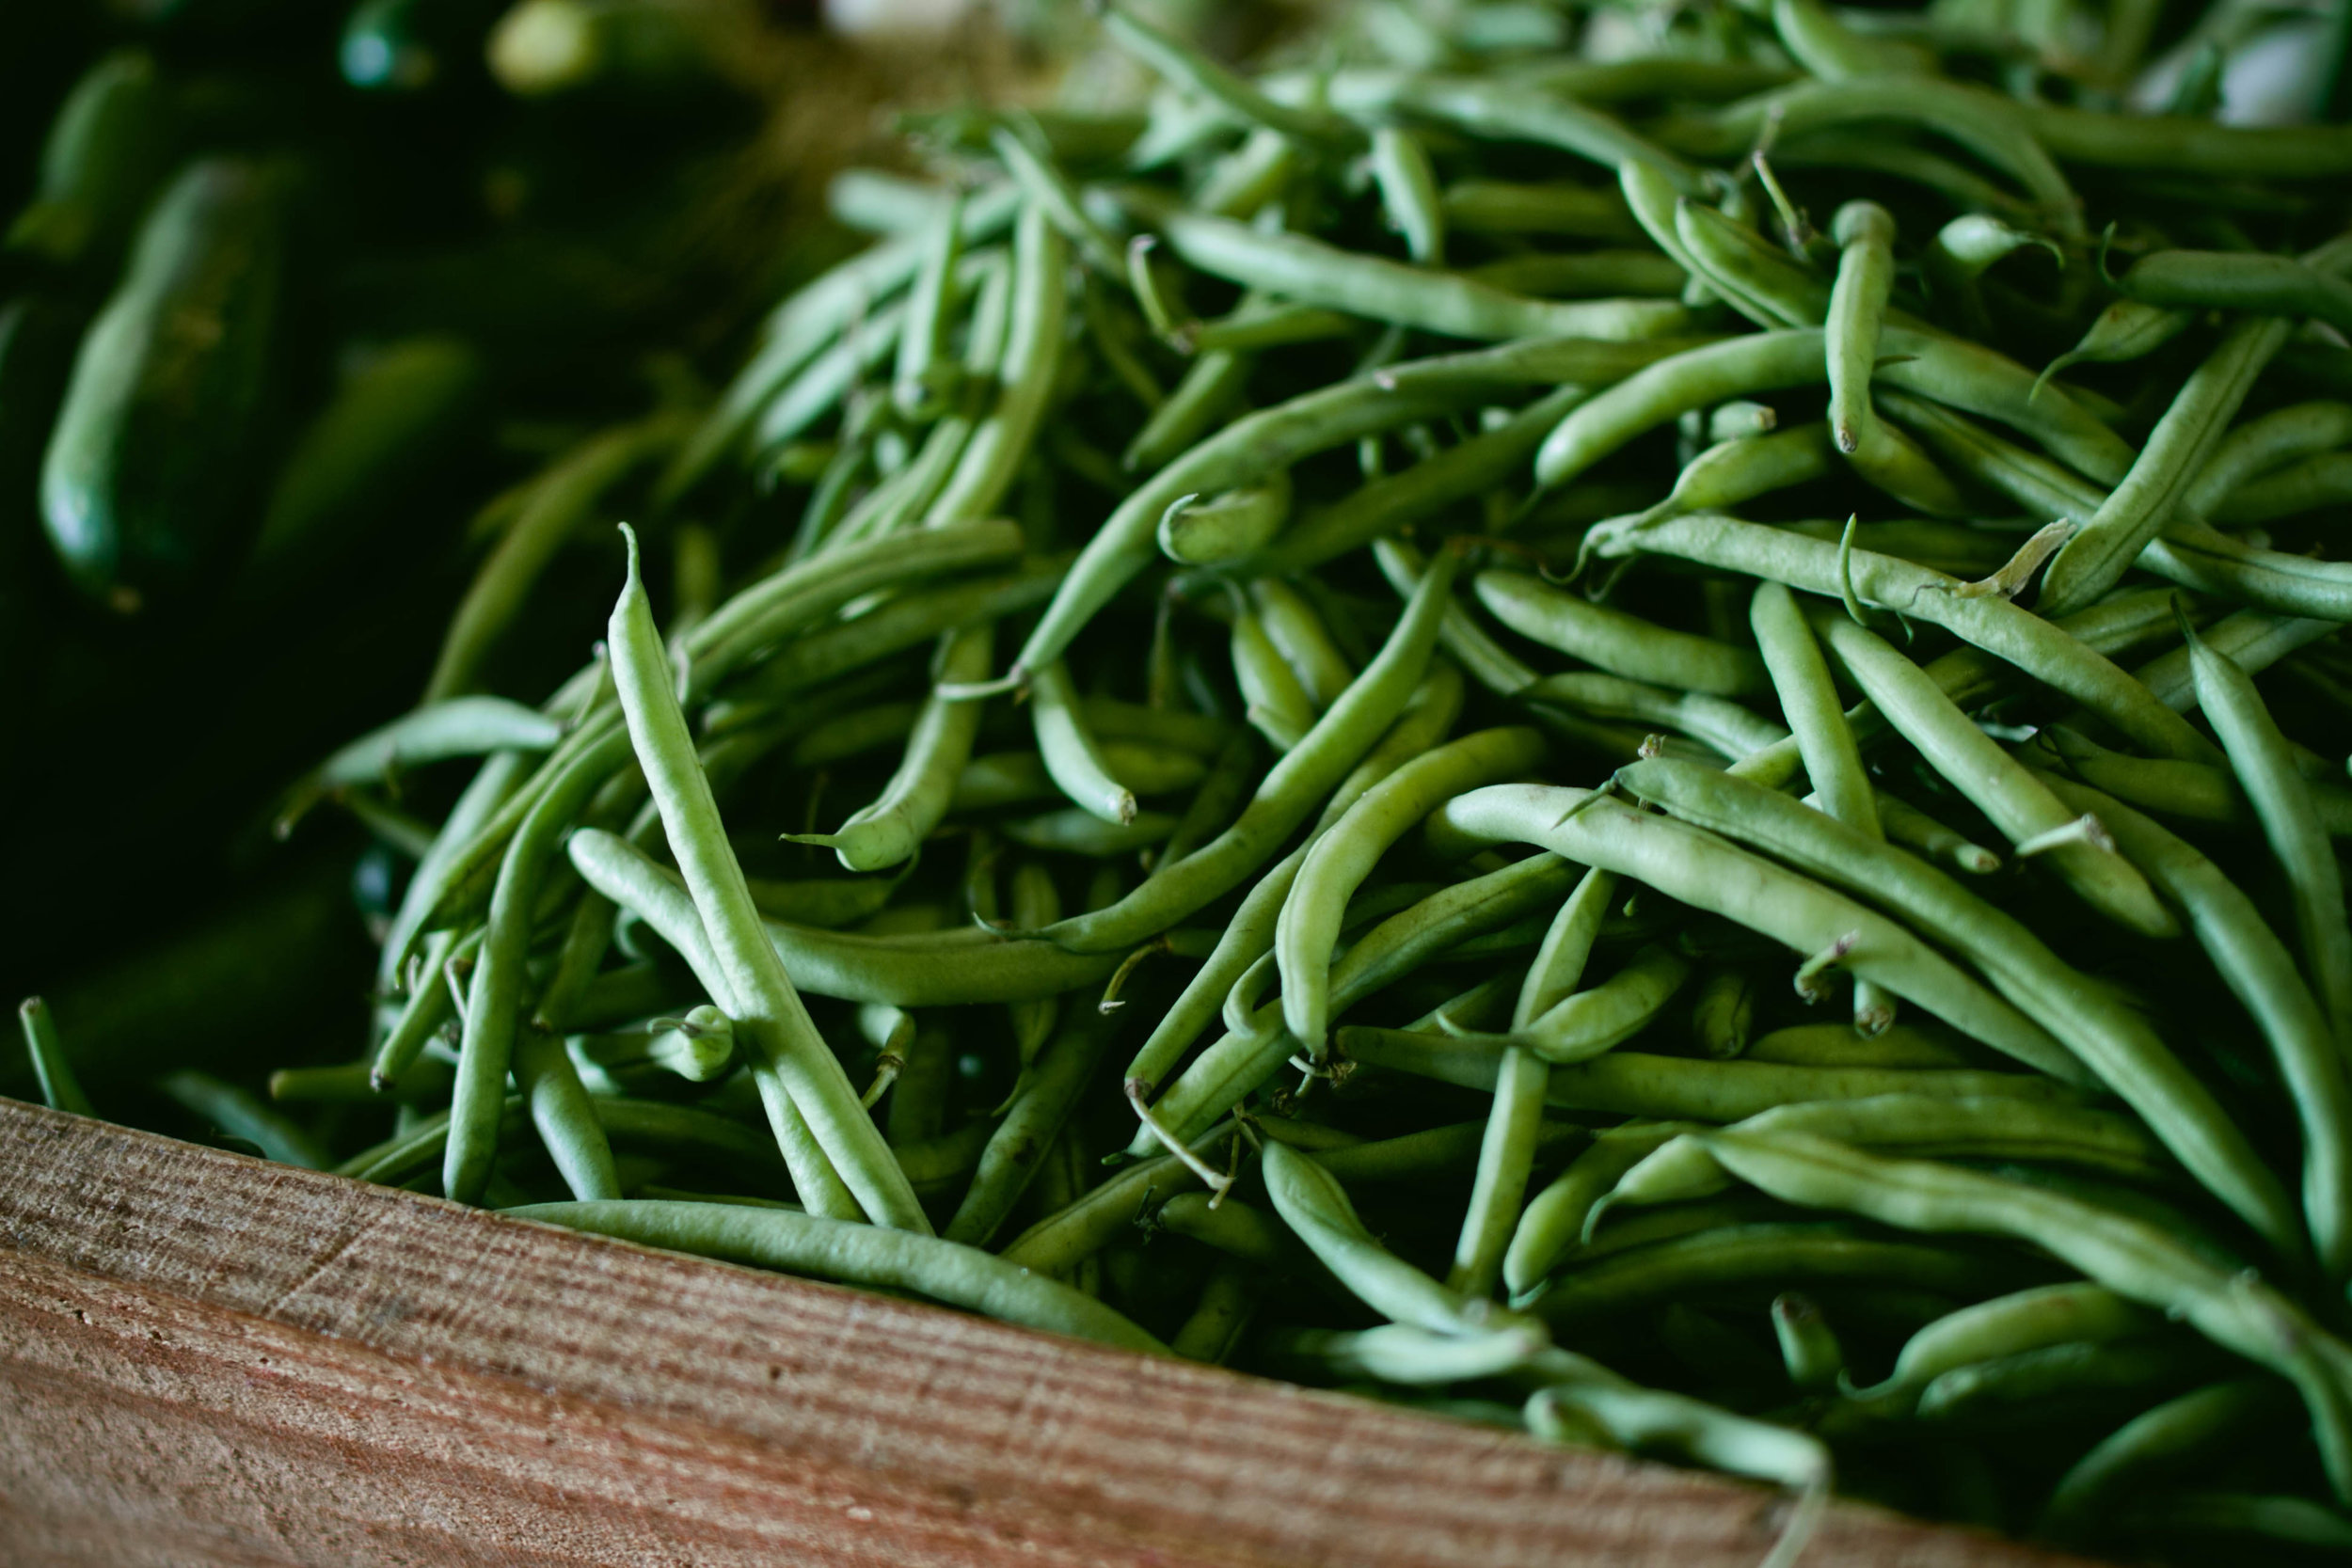 green-beans-garden-vegetables.jpg